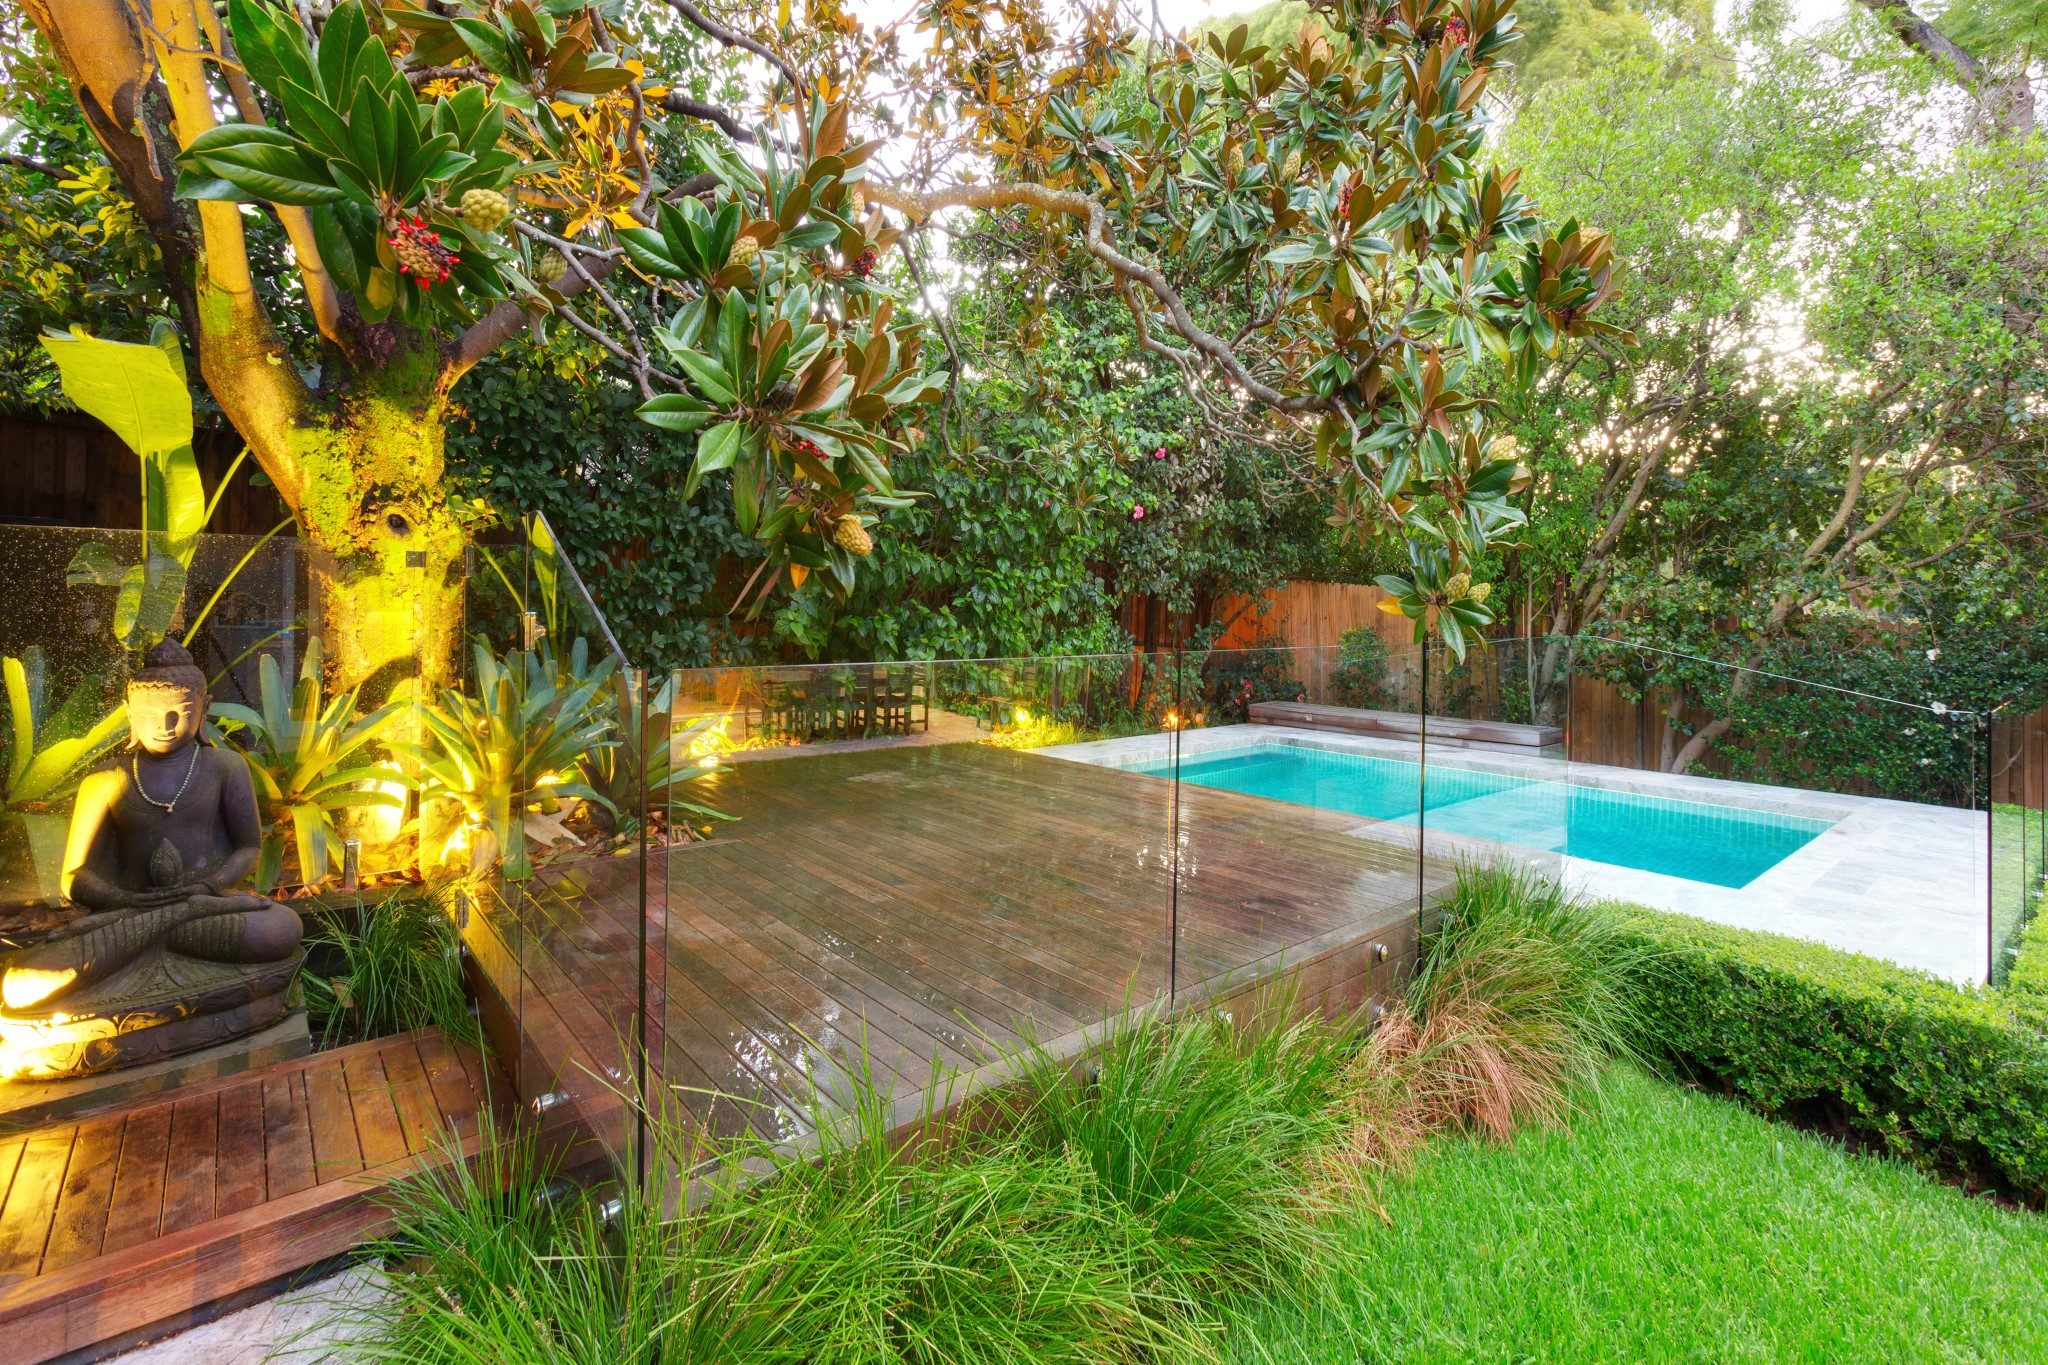 Classic Design Swimming Pool surrounded by plants and trees